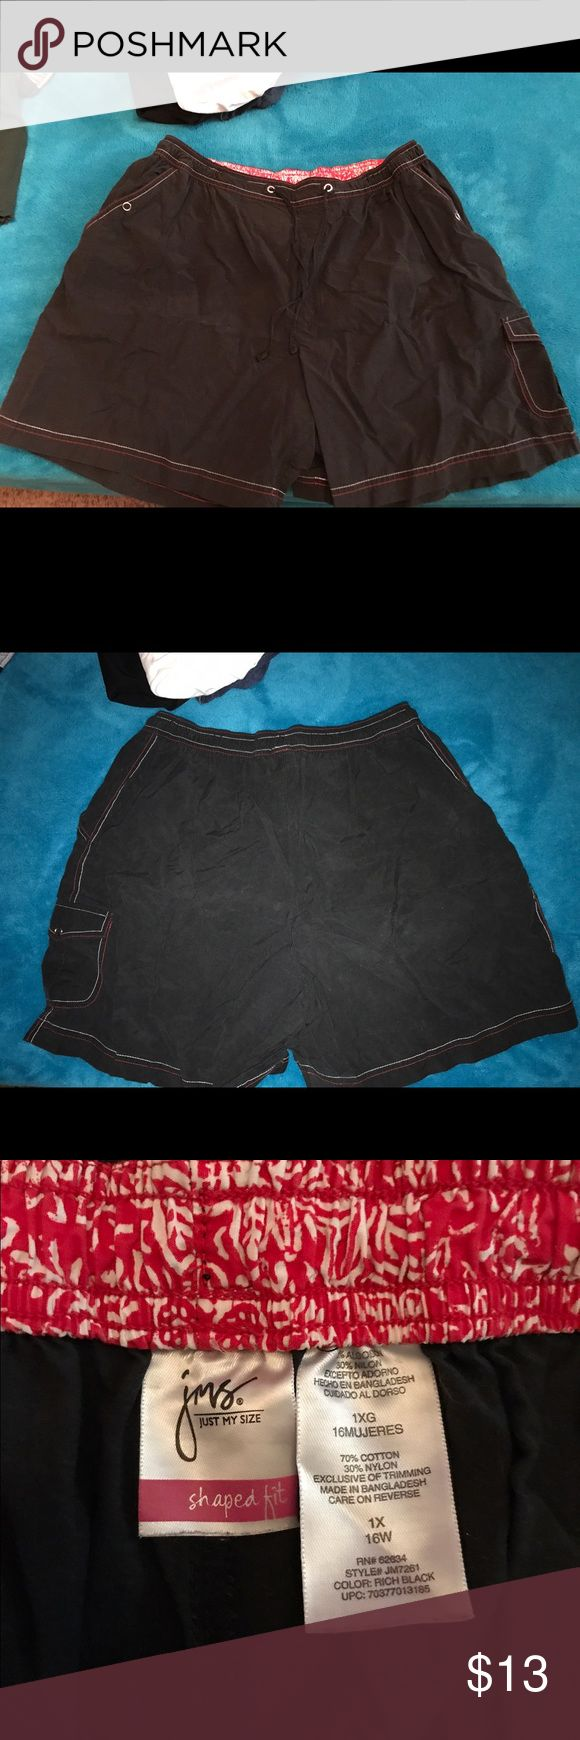 WOMENS SPORT SHORTS SZ 16 W Women's sports shorts size 16W by Just My Size, black and red in Excellent Condition Just My Size Shorts Cargos